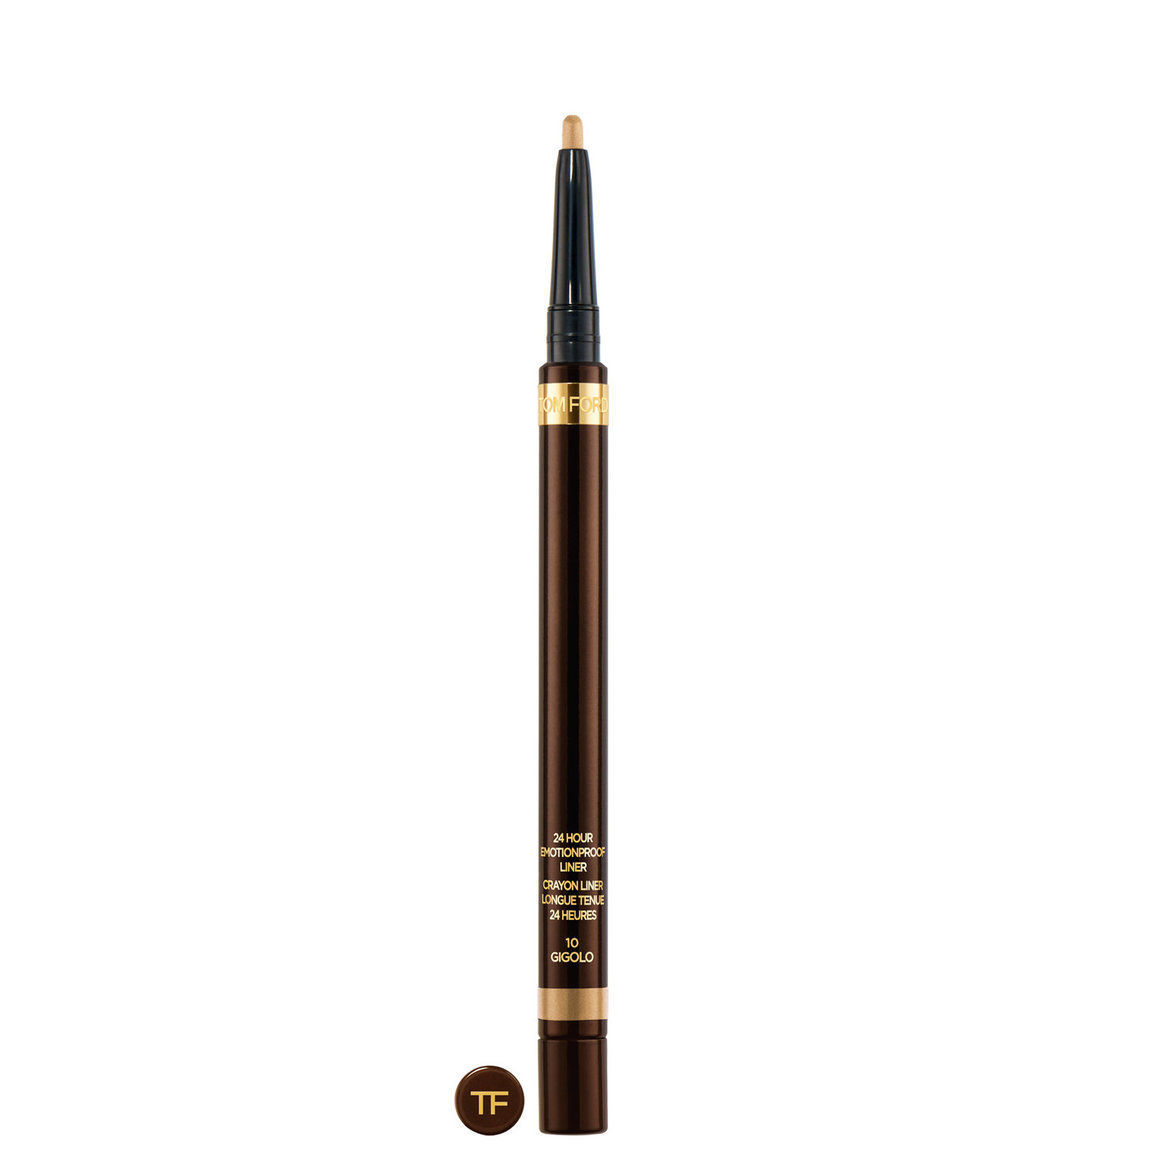 TOM FORD Emotionproof Liner 10 Gigolo alternative view 1 - product swatch.